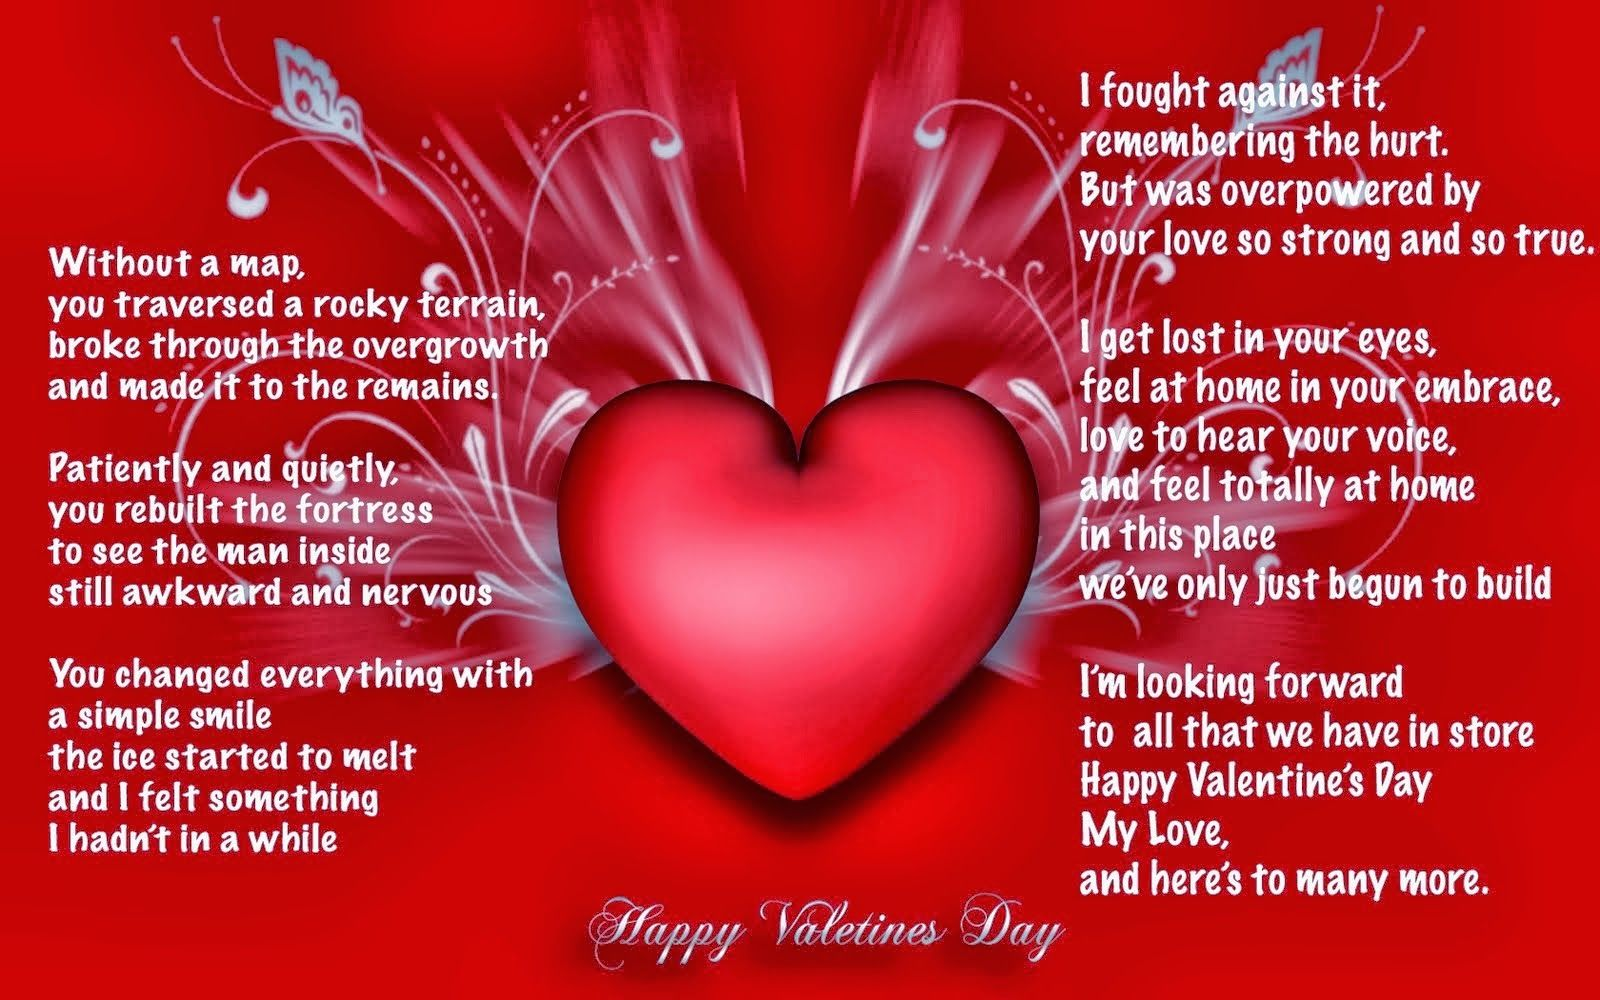 Free valentine greeting wall papers them greetings through free valentine greeting wall papers them greetings through messages or emails top m4hsunfo Choice Image